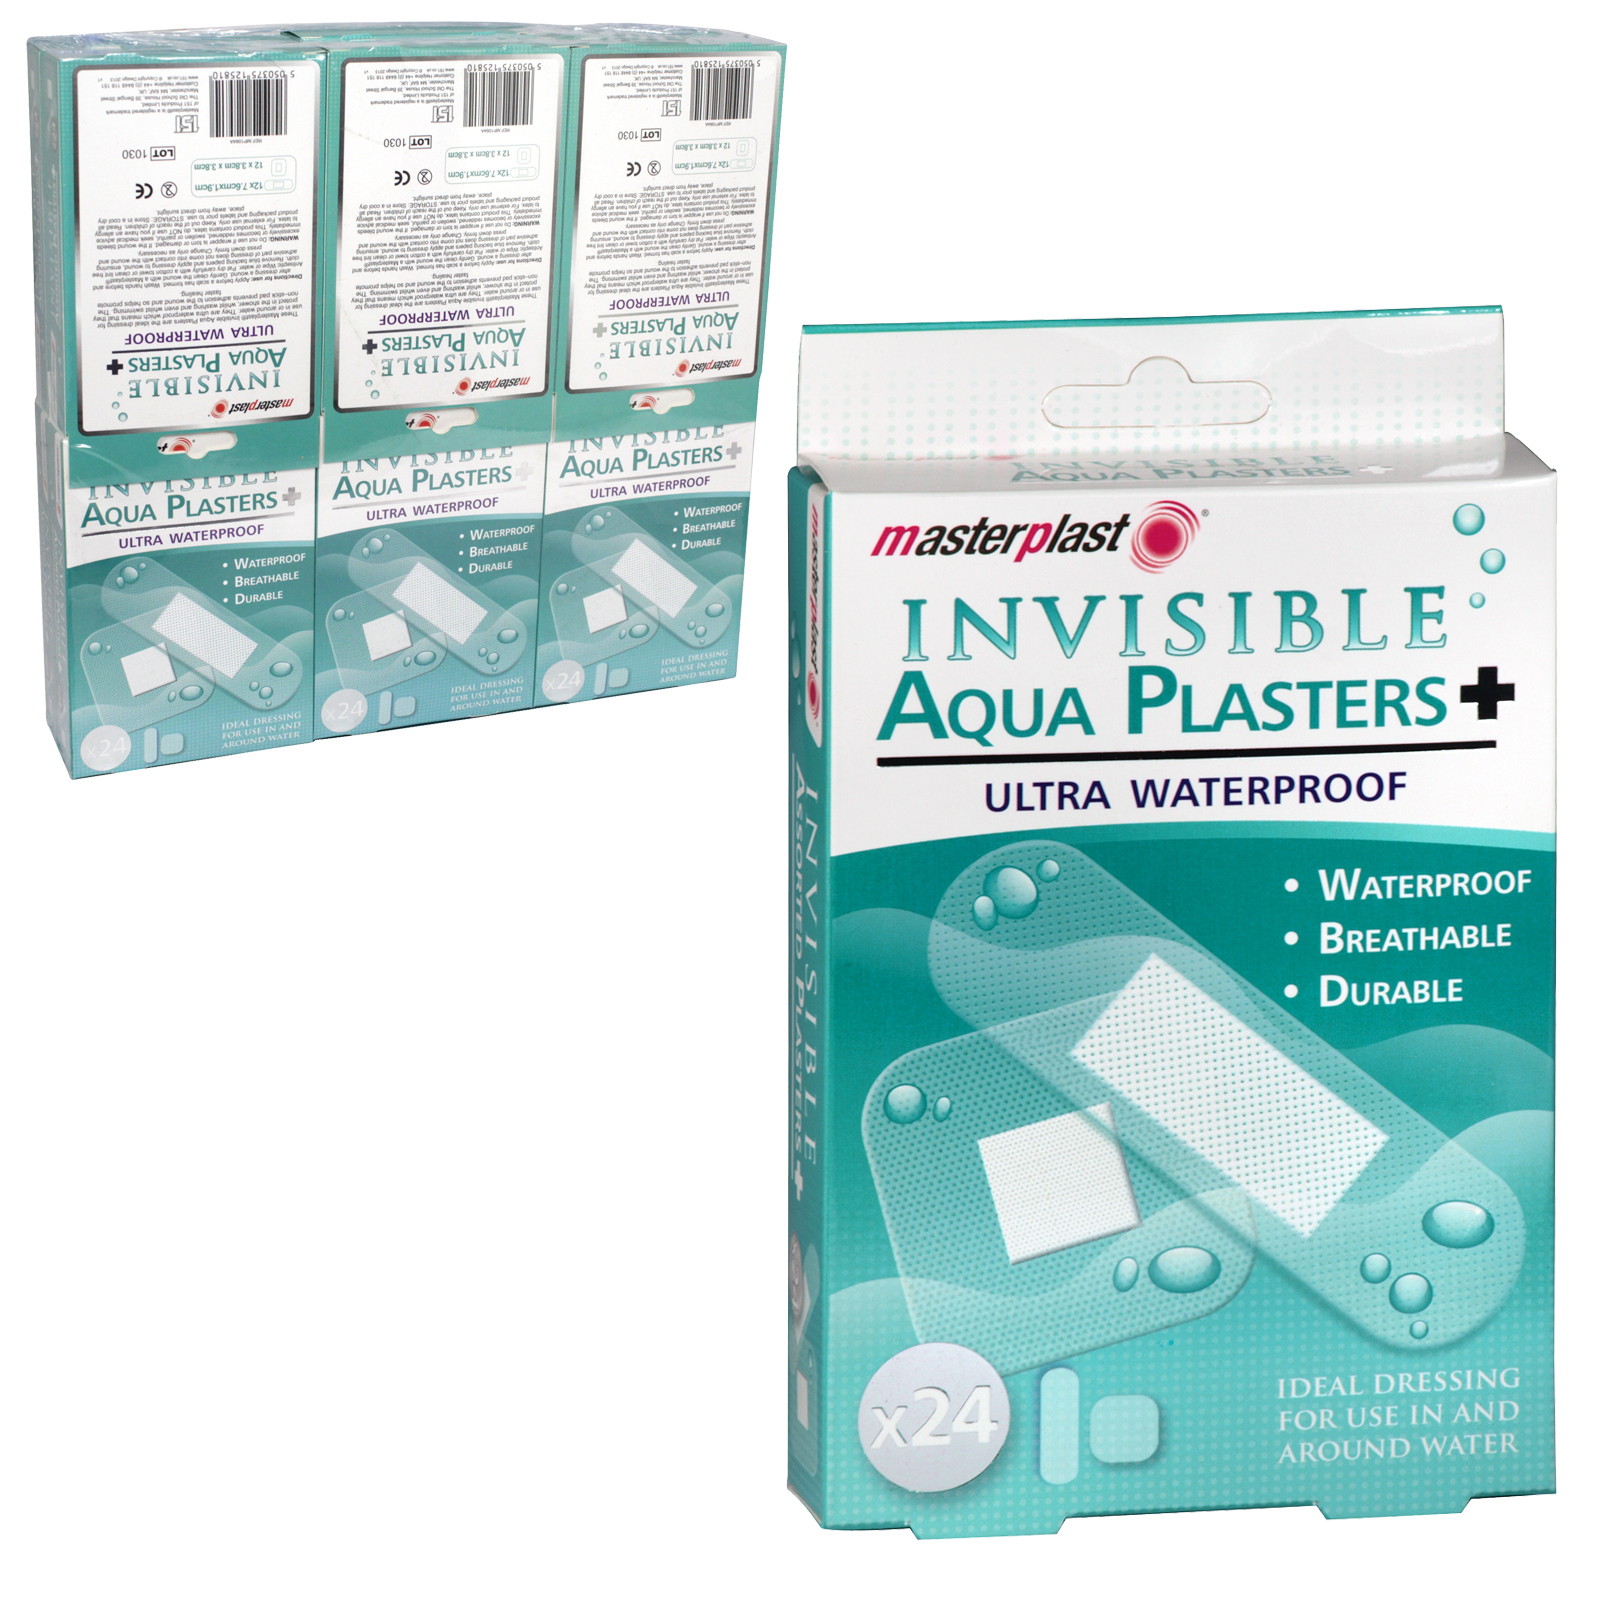 MASTERPLAST 24 INVISIBLE AQUA PLASTERS ULTRA WATERPROOF X12